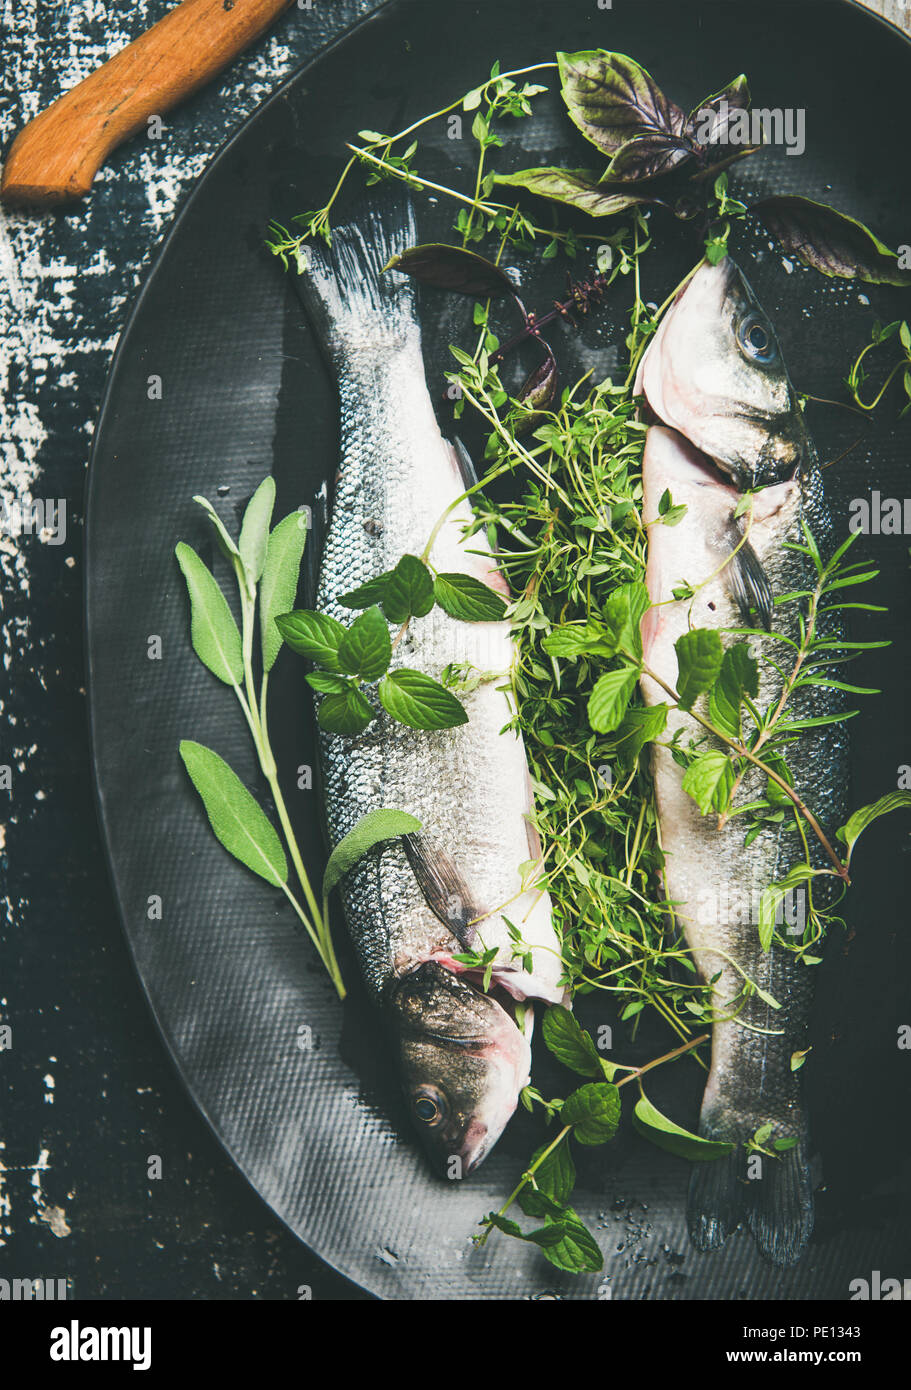 Flat-lay of raw uncooked sea bass fish with herbs - Stock Image